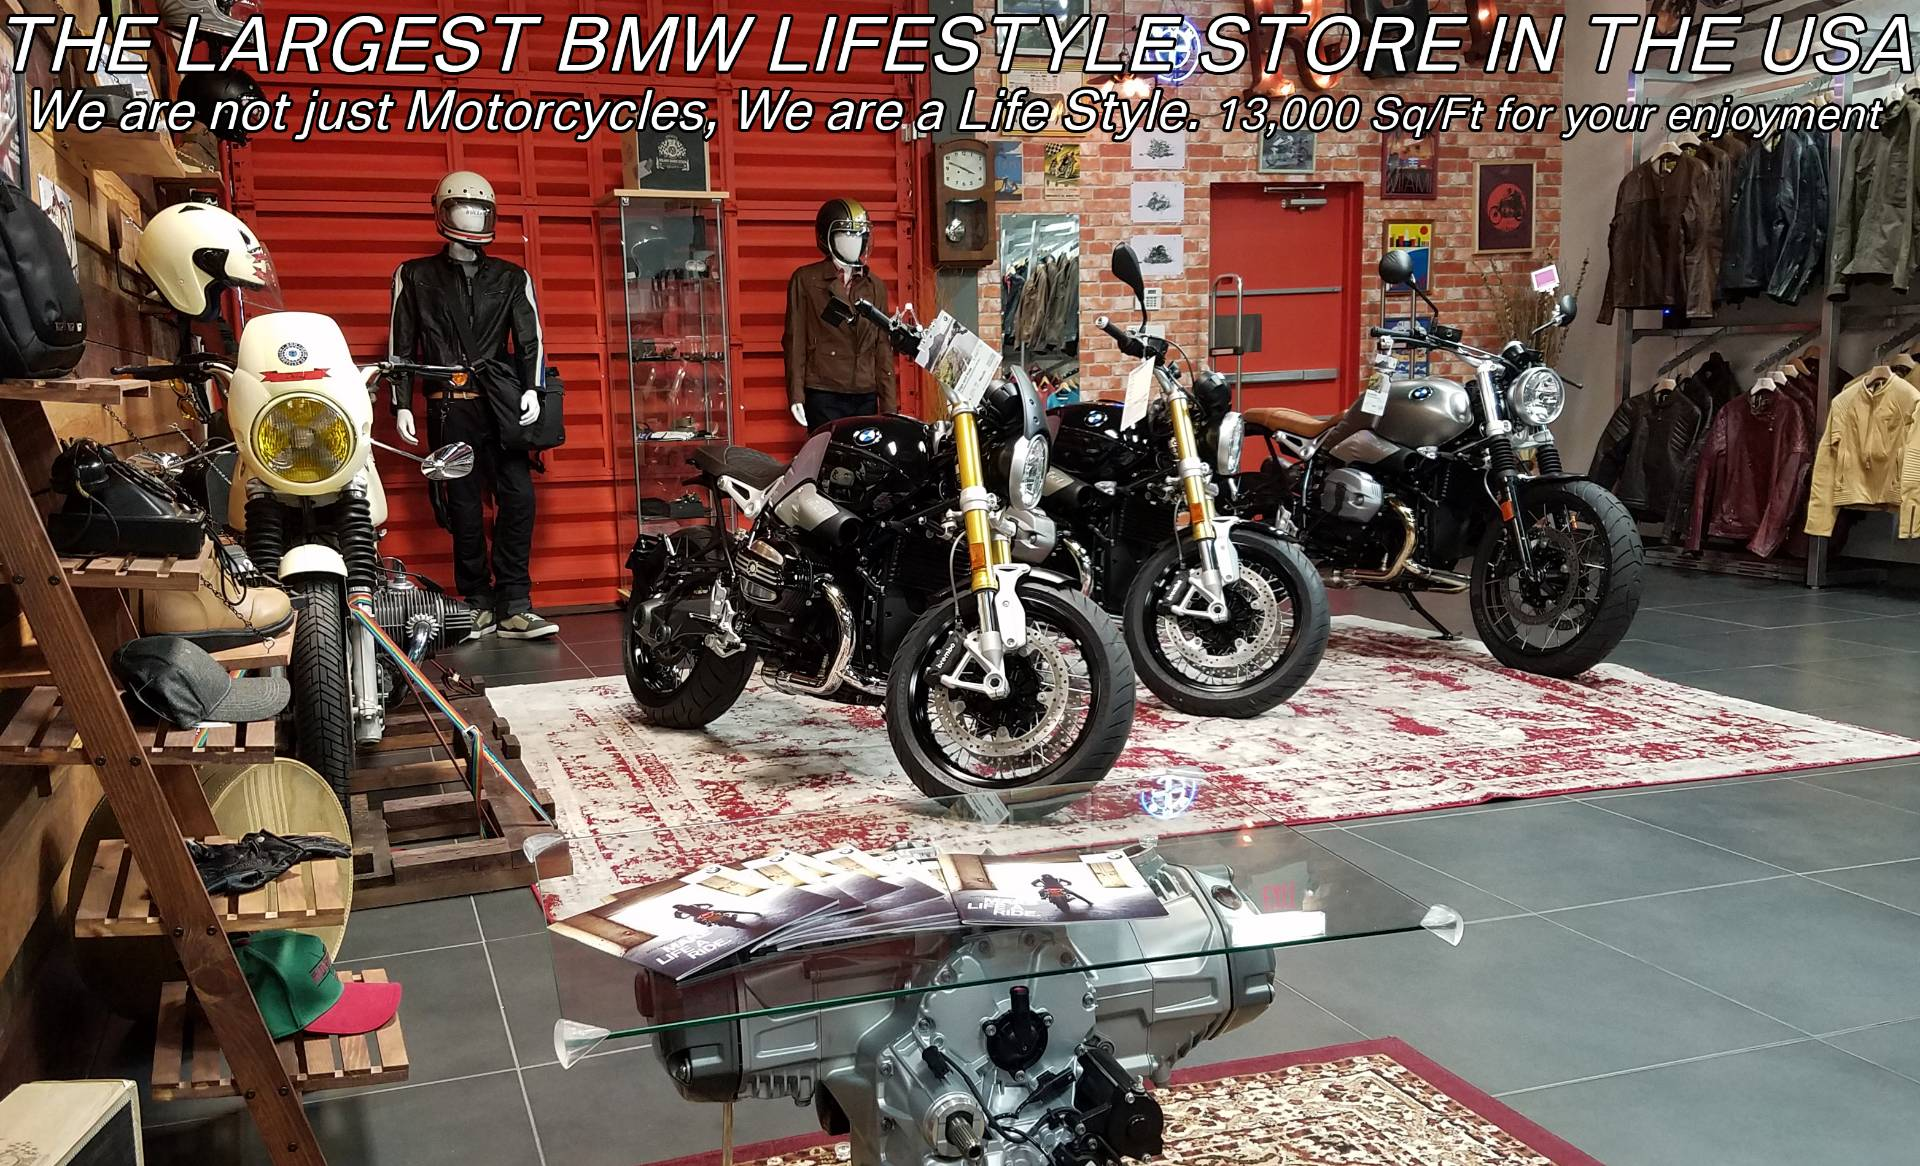 New 2019 BMW R nine T for sale, BMW R nineT for sale, BMW Motorcycle RnineT, BMW Motorcycles of Miami, Motorcycles of Miami, Motorcycles Miami - Photo 24